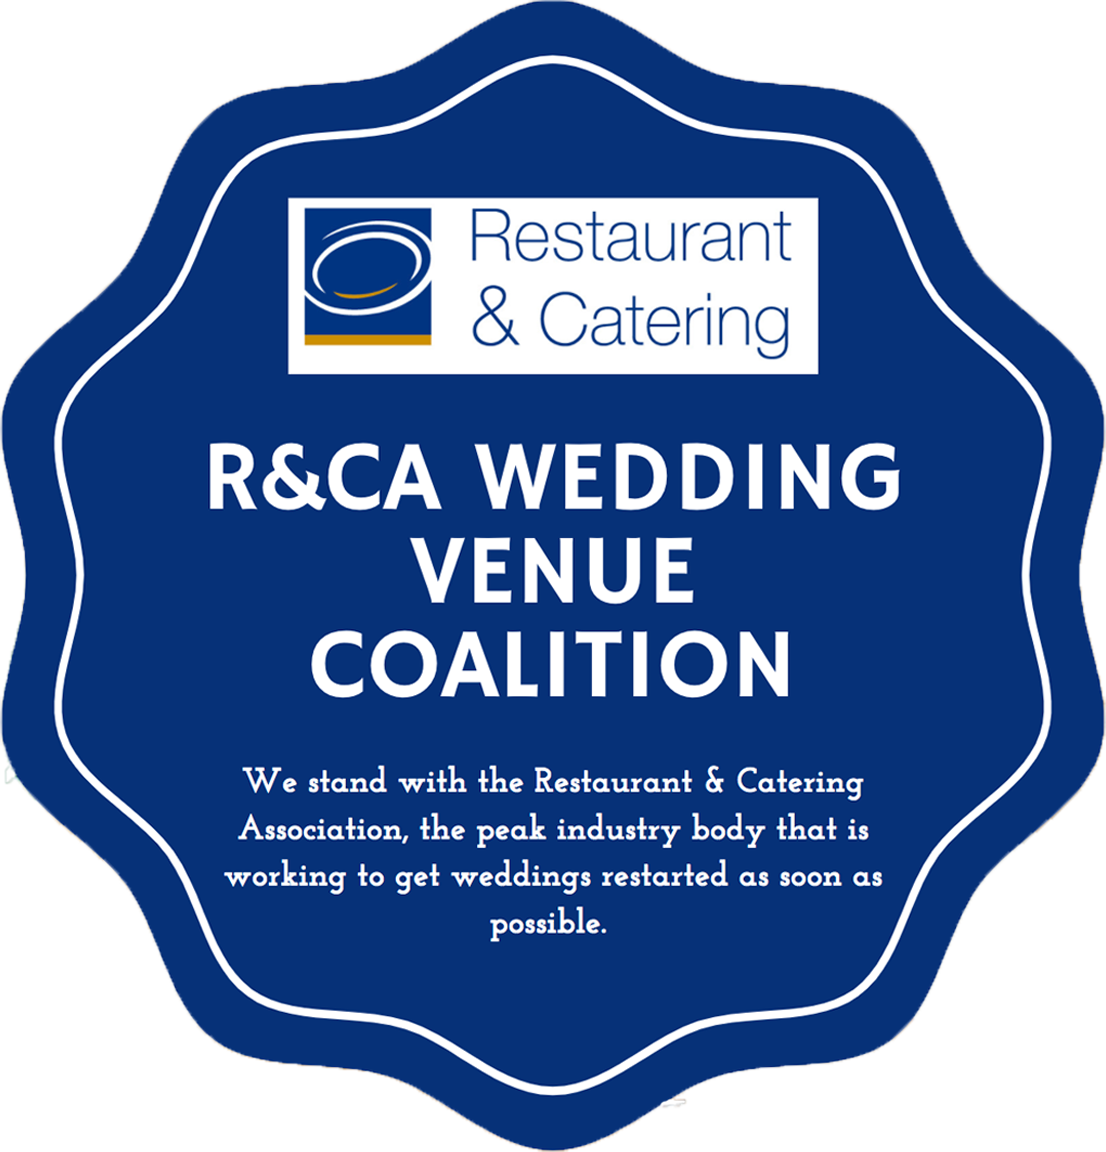 Restaurant and Catering Association